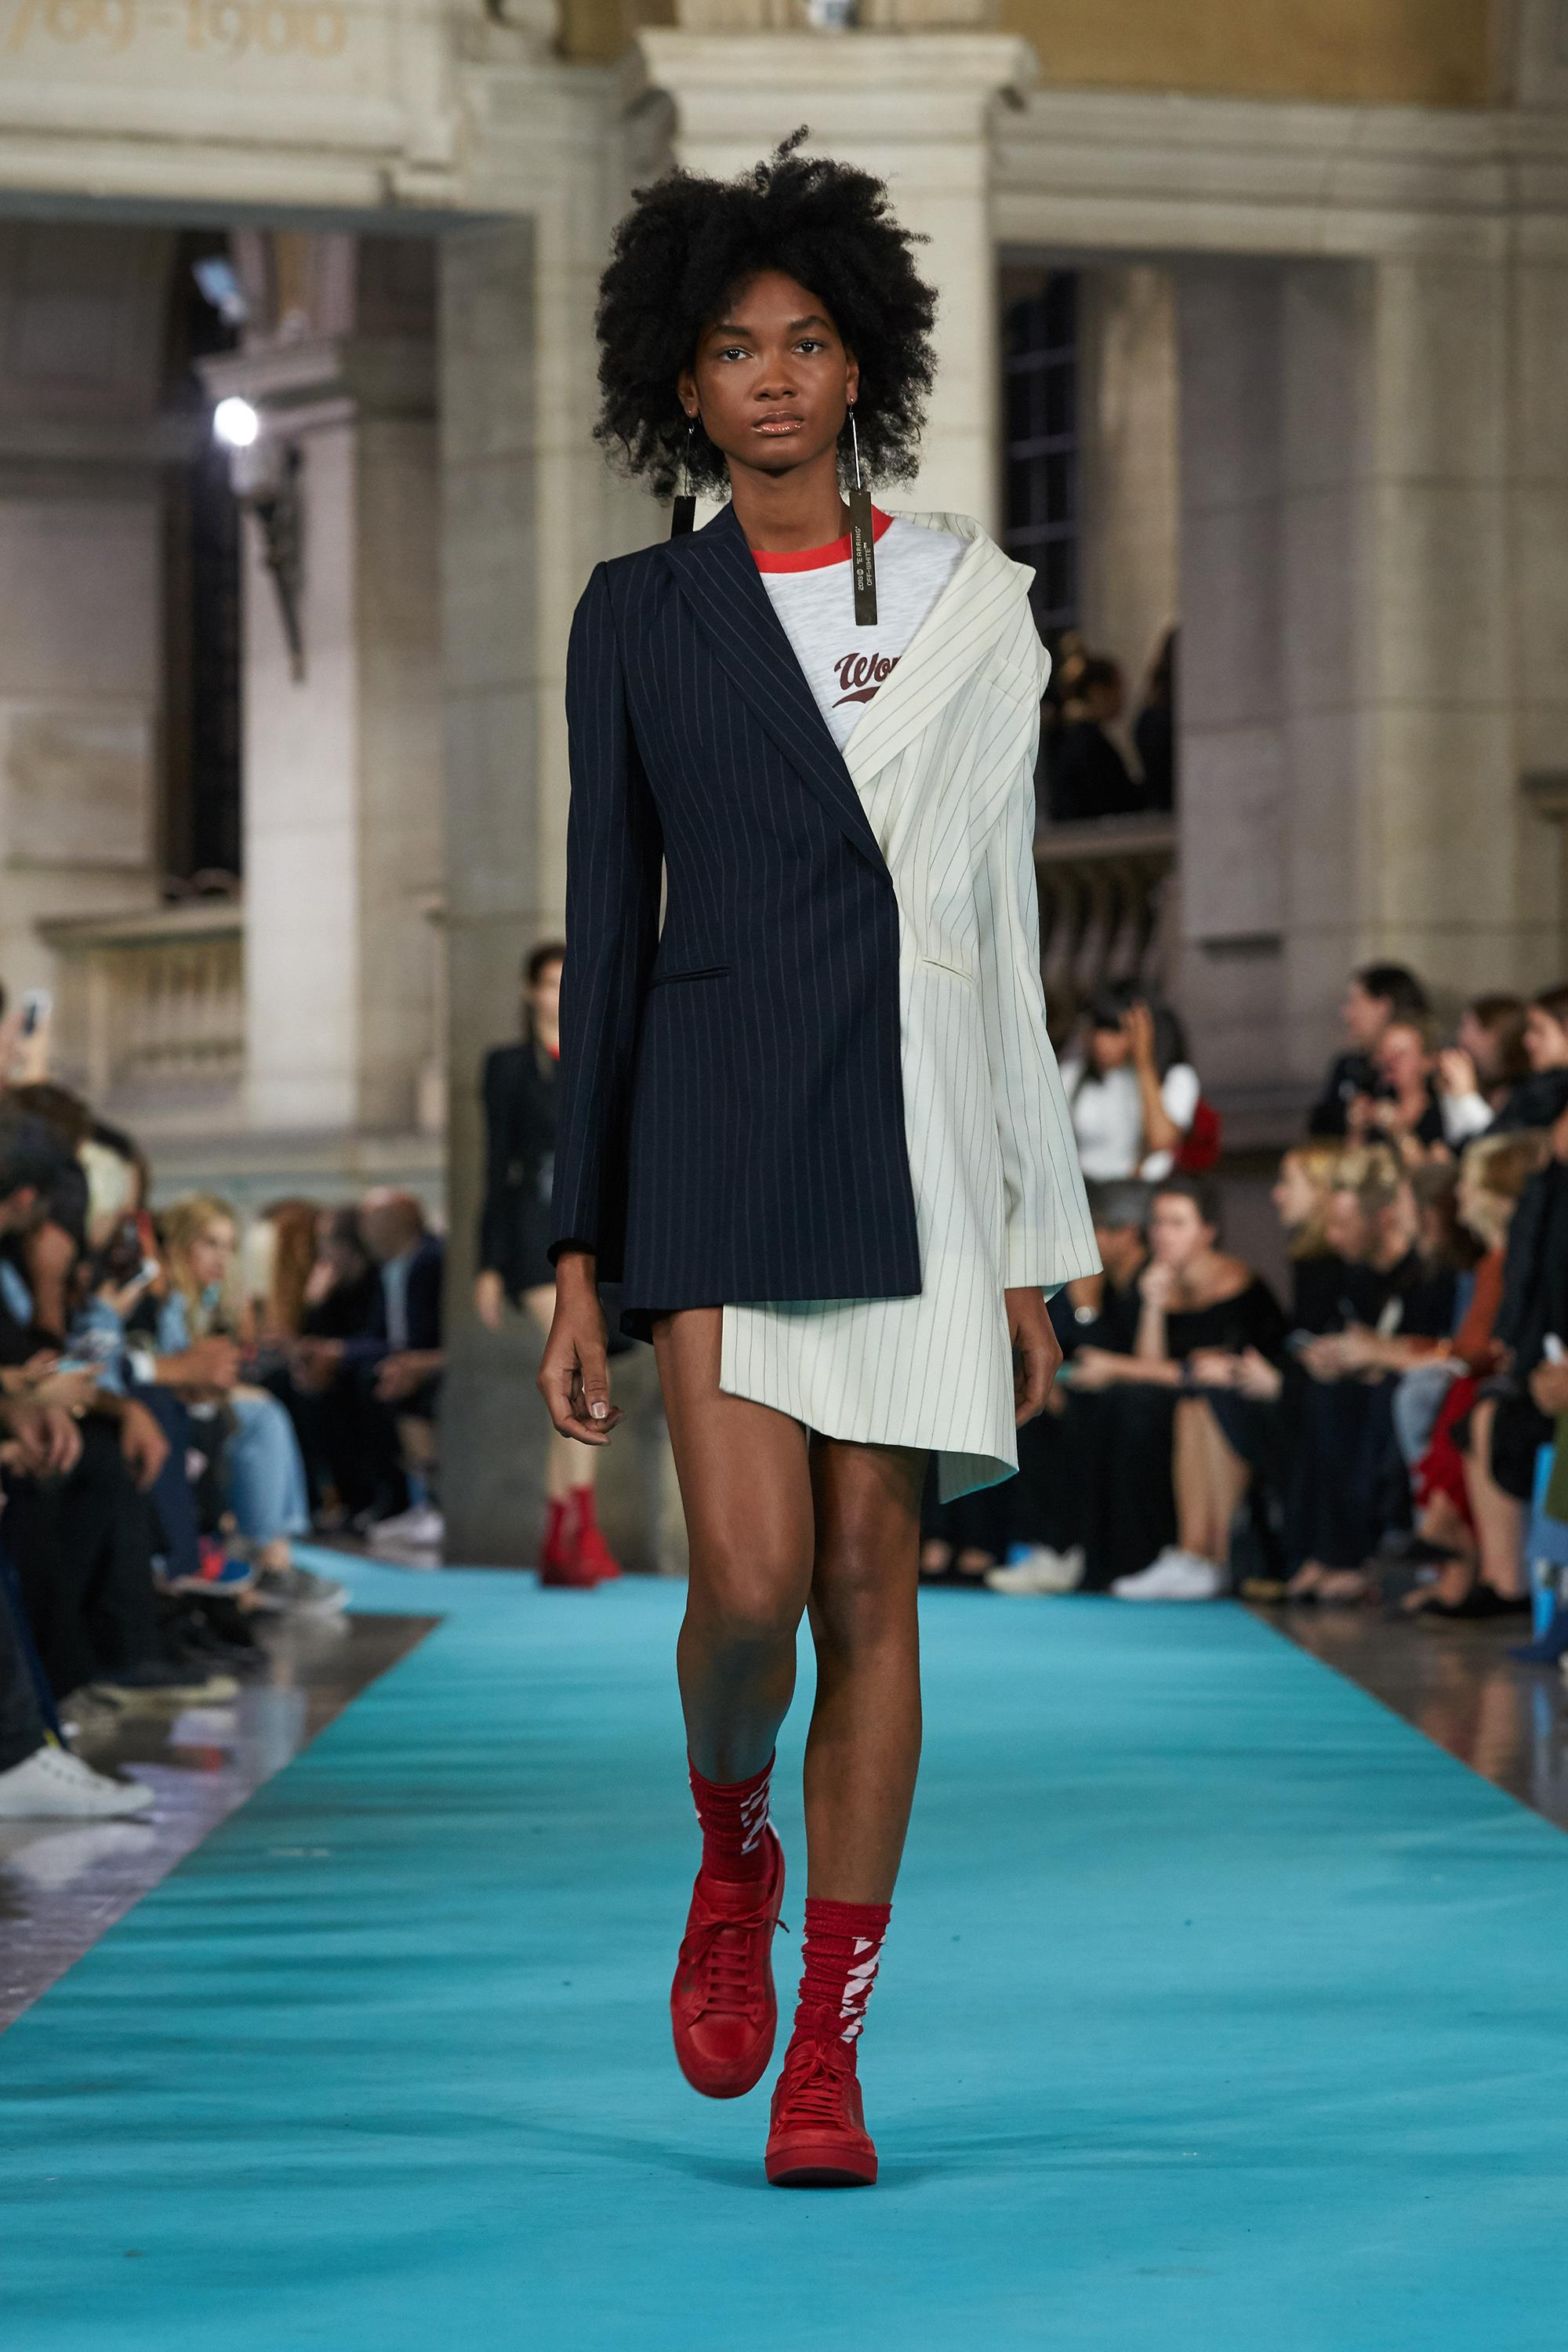 A model walks down a runway while wearing long earrings, an asymmetrical pinstriped suit dress, and red sneakers.